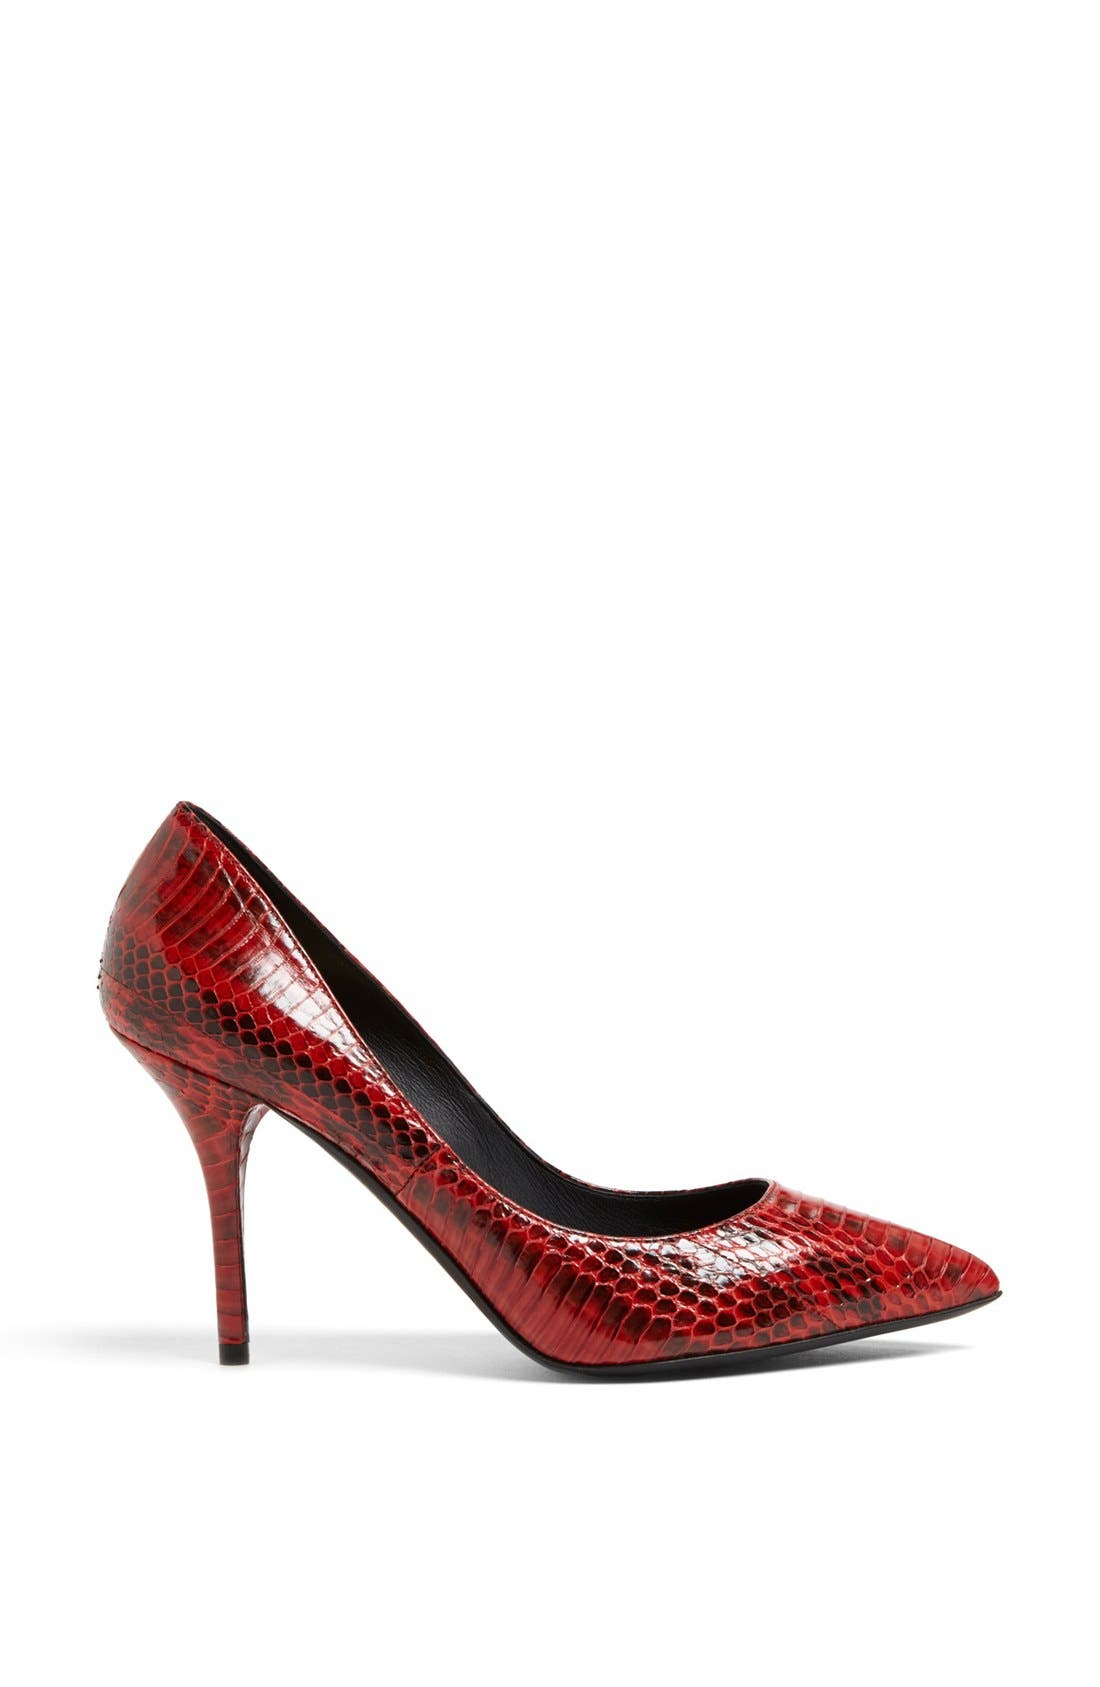 Alternate Image 4  - Dolce&Gabbana 'Elaphe' Snakeskin Pump